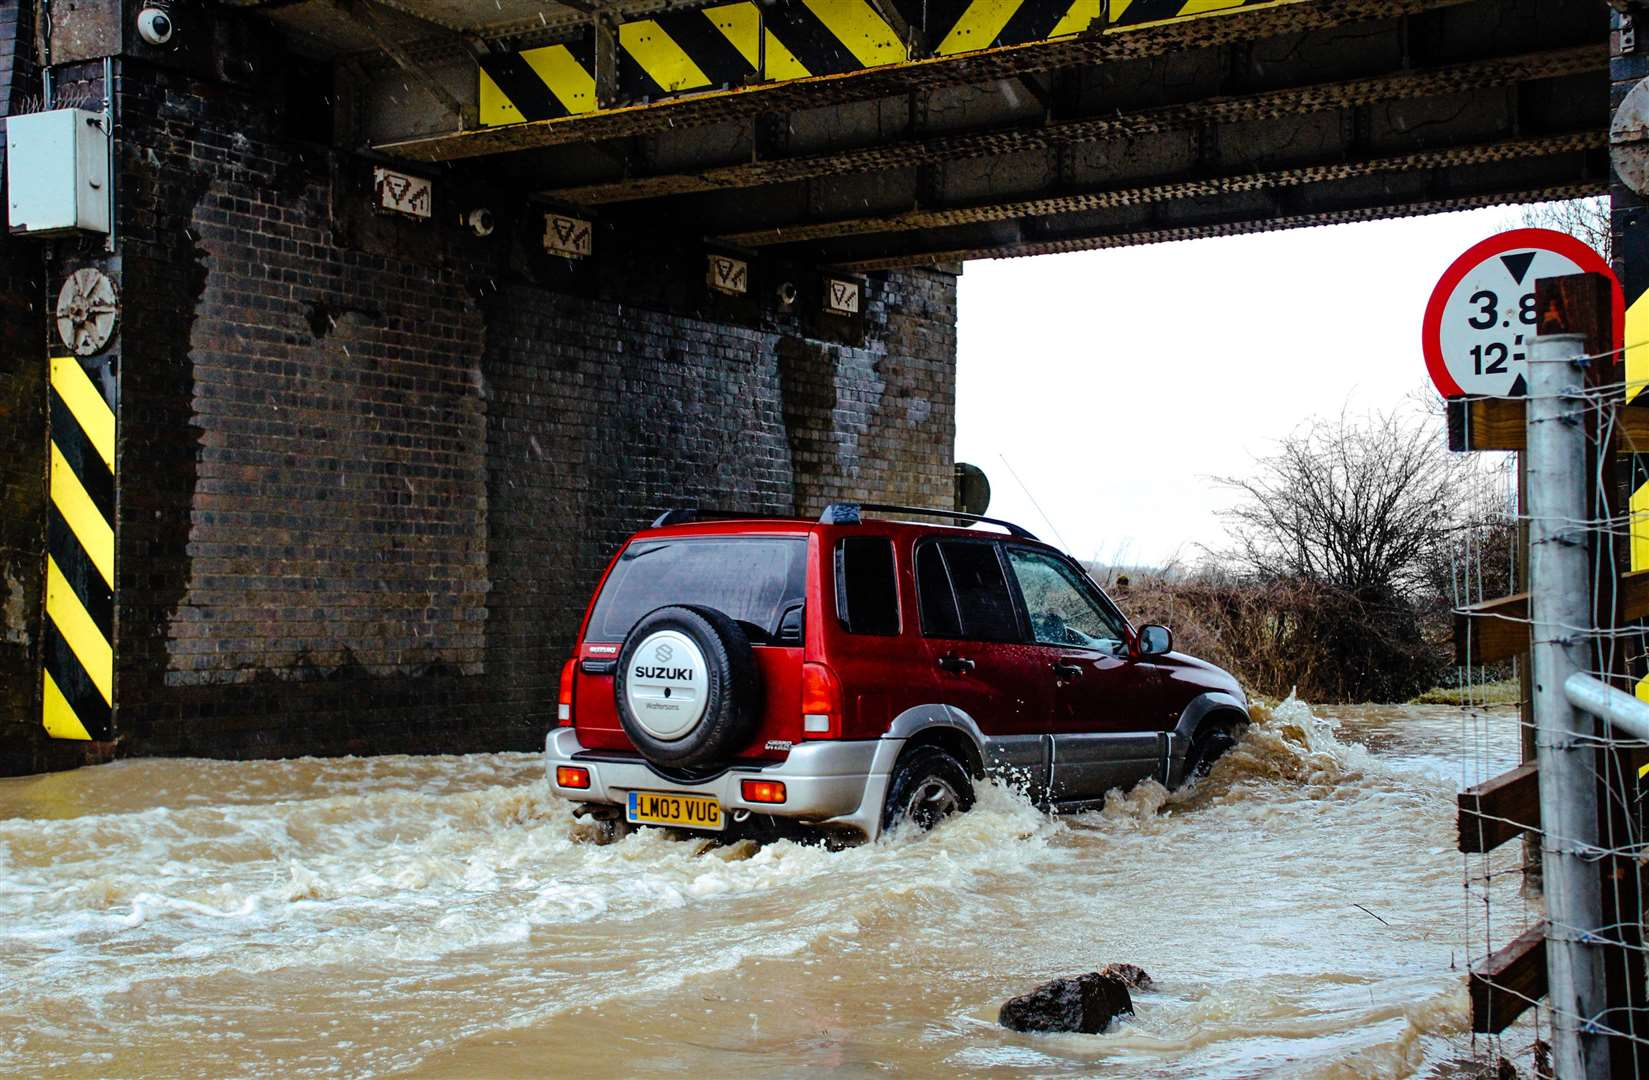 The Met Office has said driving conditions could be difficult, with spray and flooding on roads.